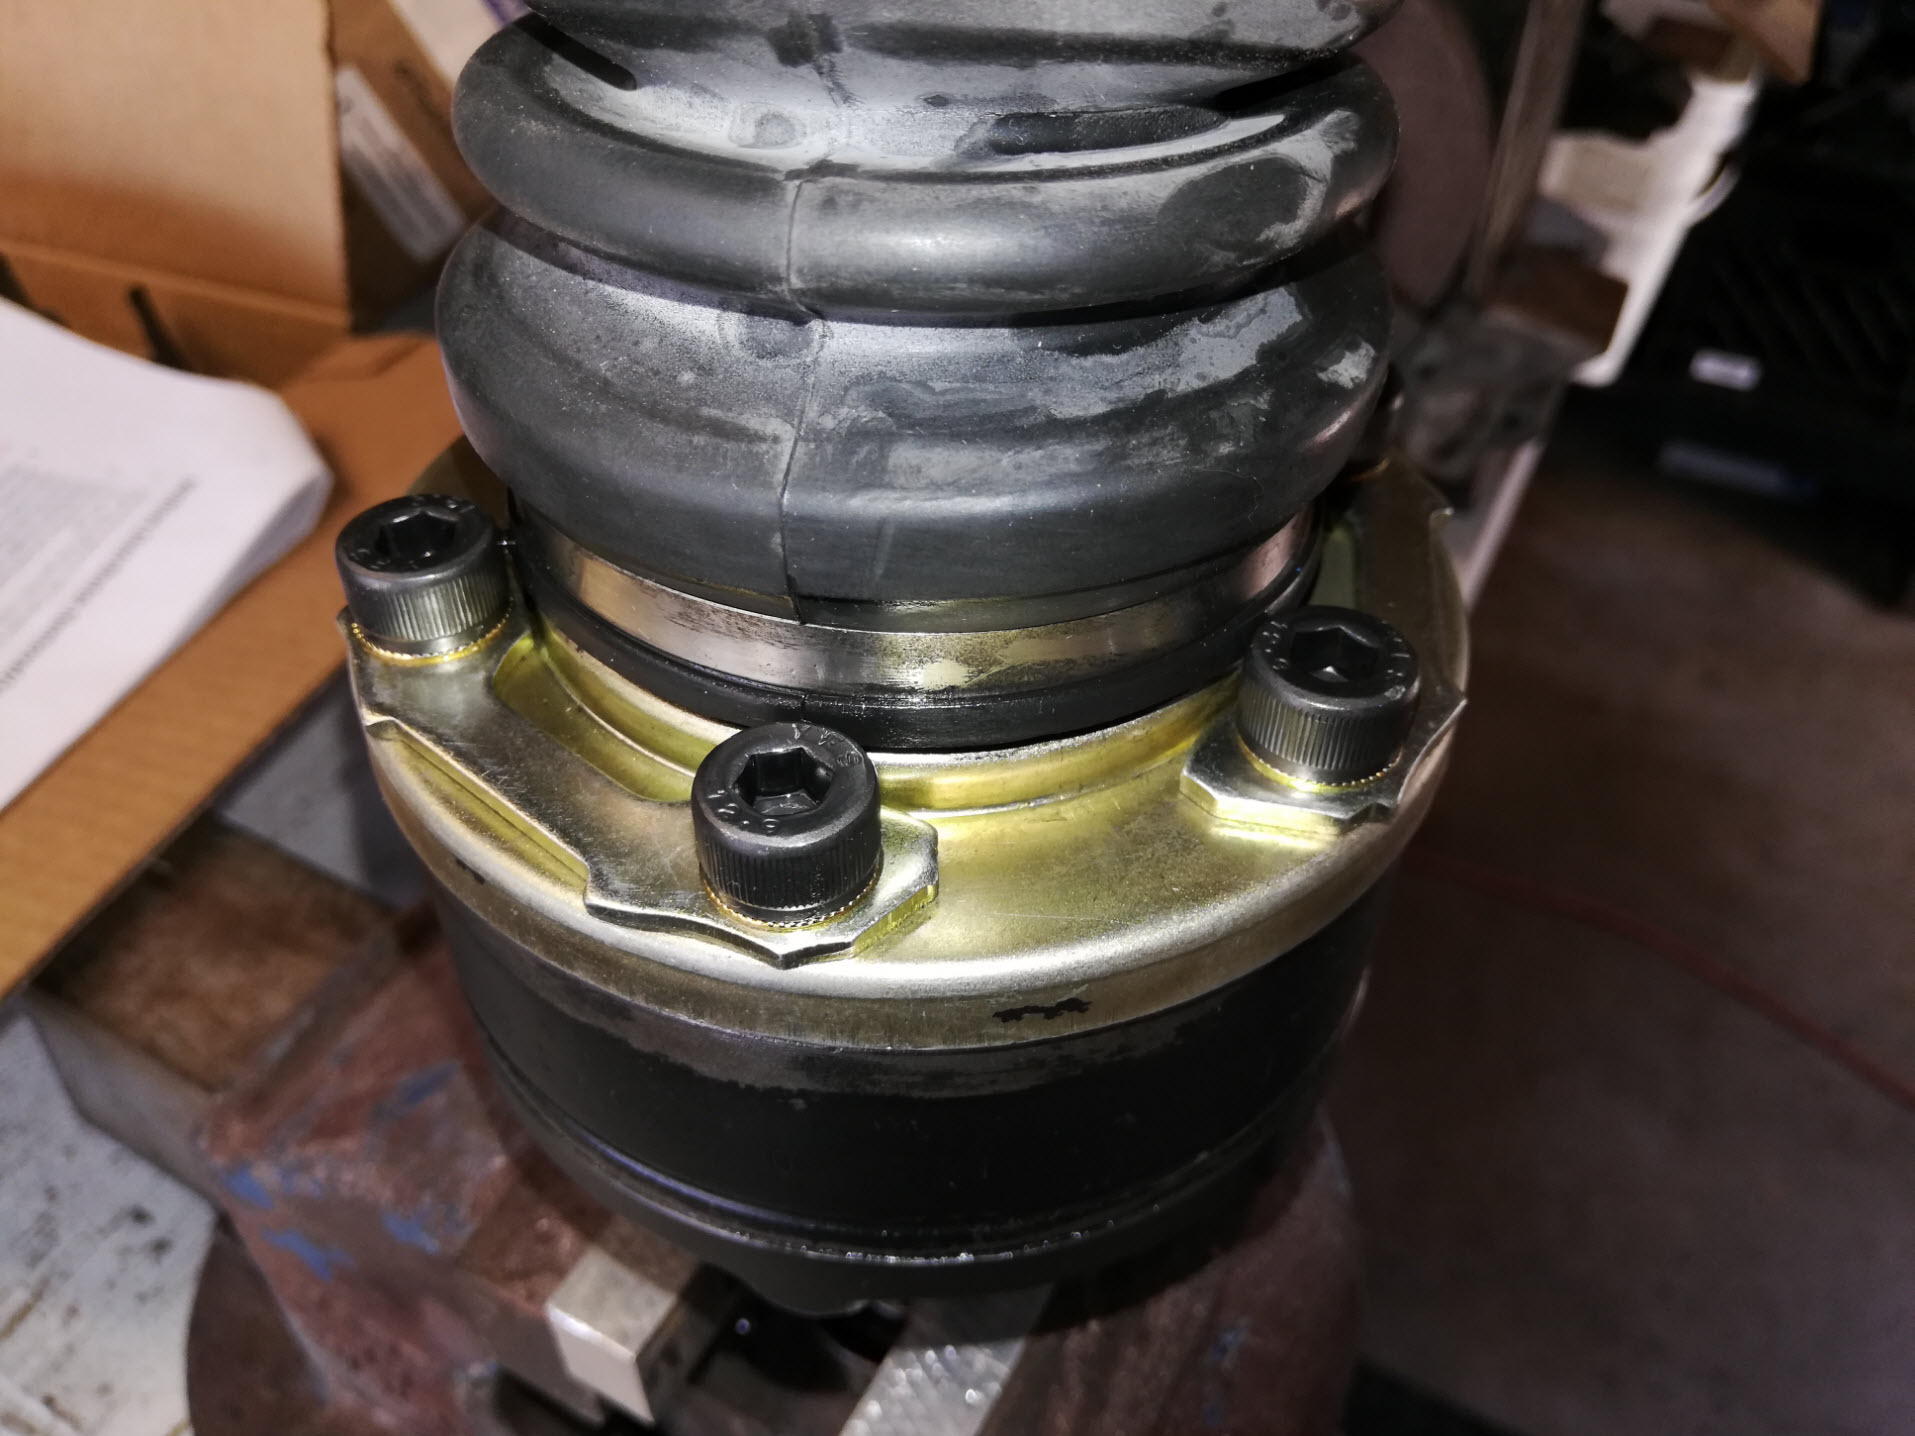 Air-cooled Porsche 911 outer CV joint and stub axle assembly on vise.